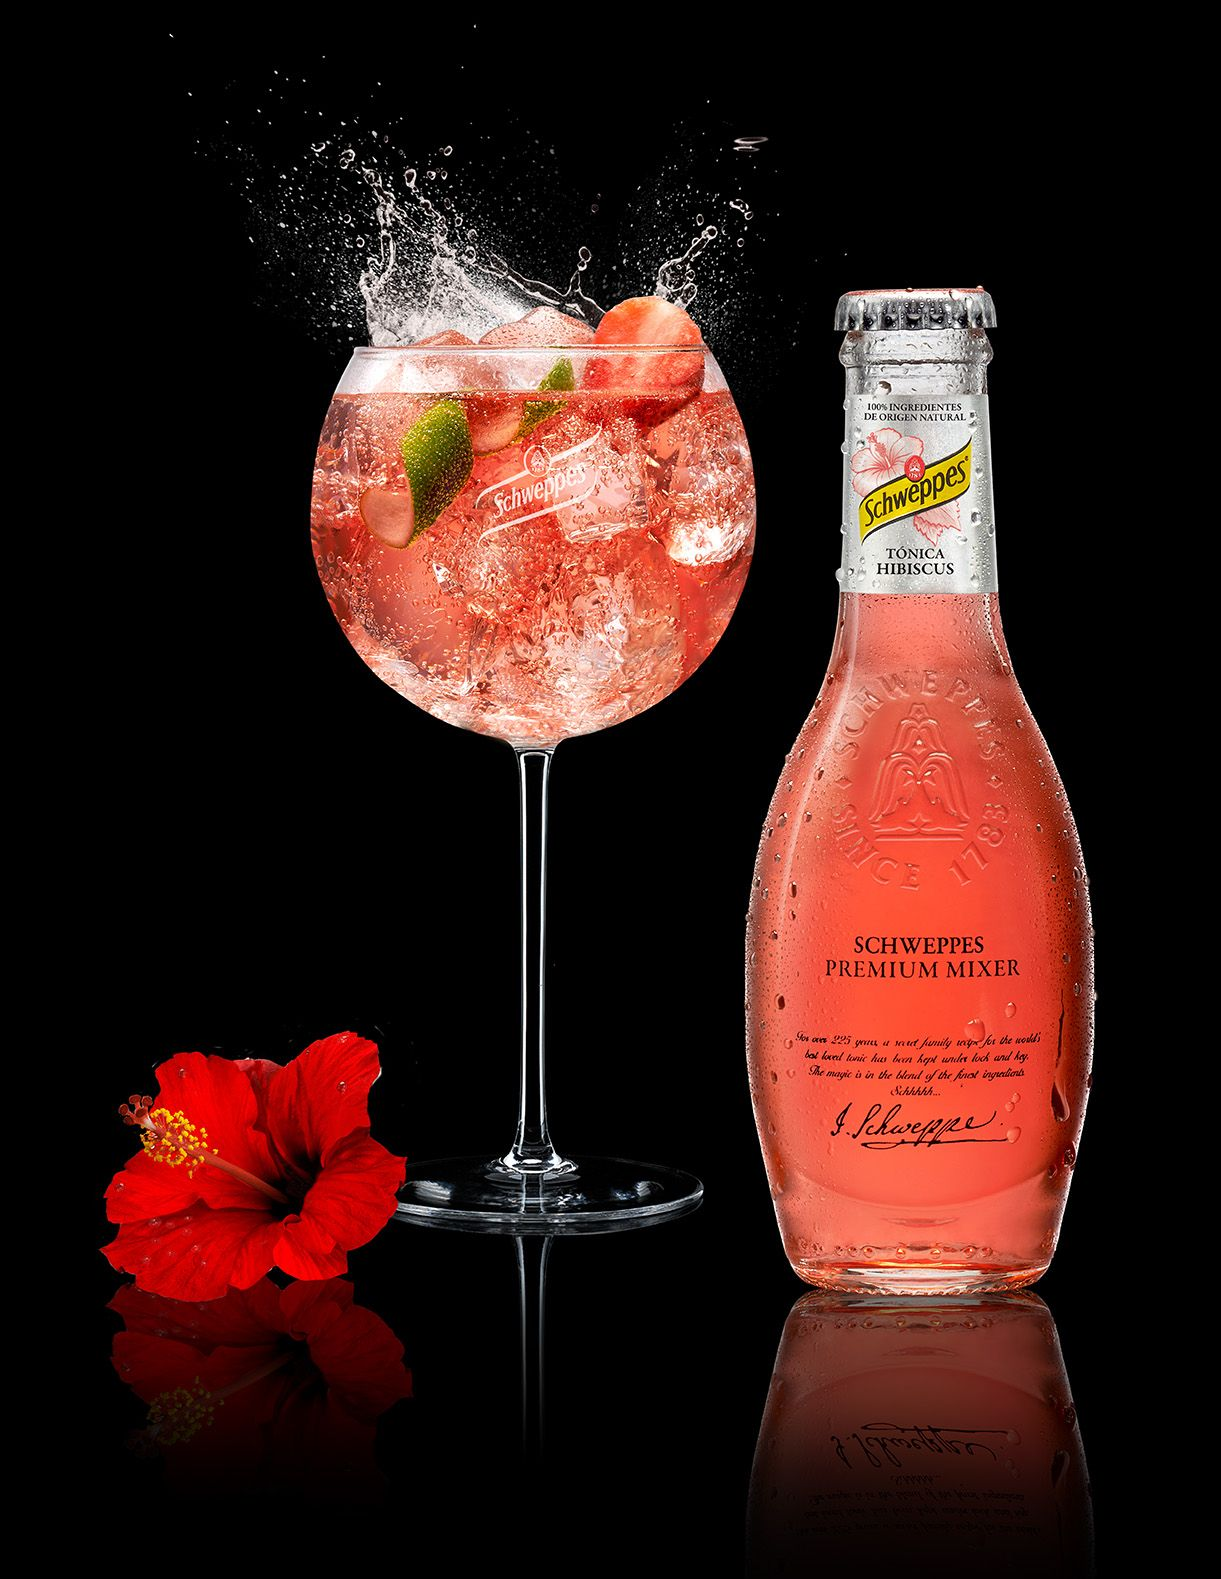 Schweppes Gin Tonic Hibiscus Fruite Chin Chin In 2018